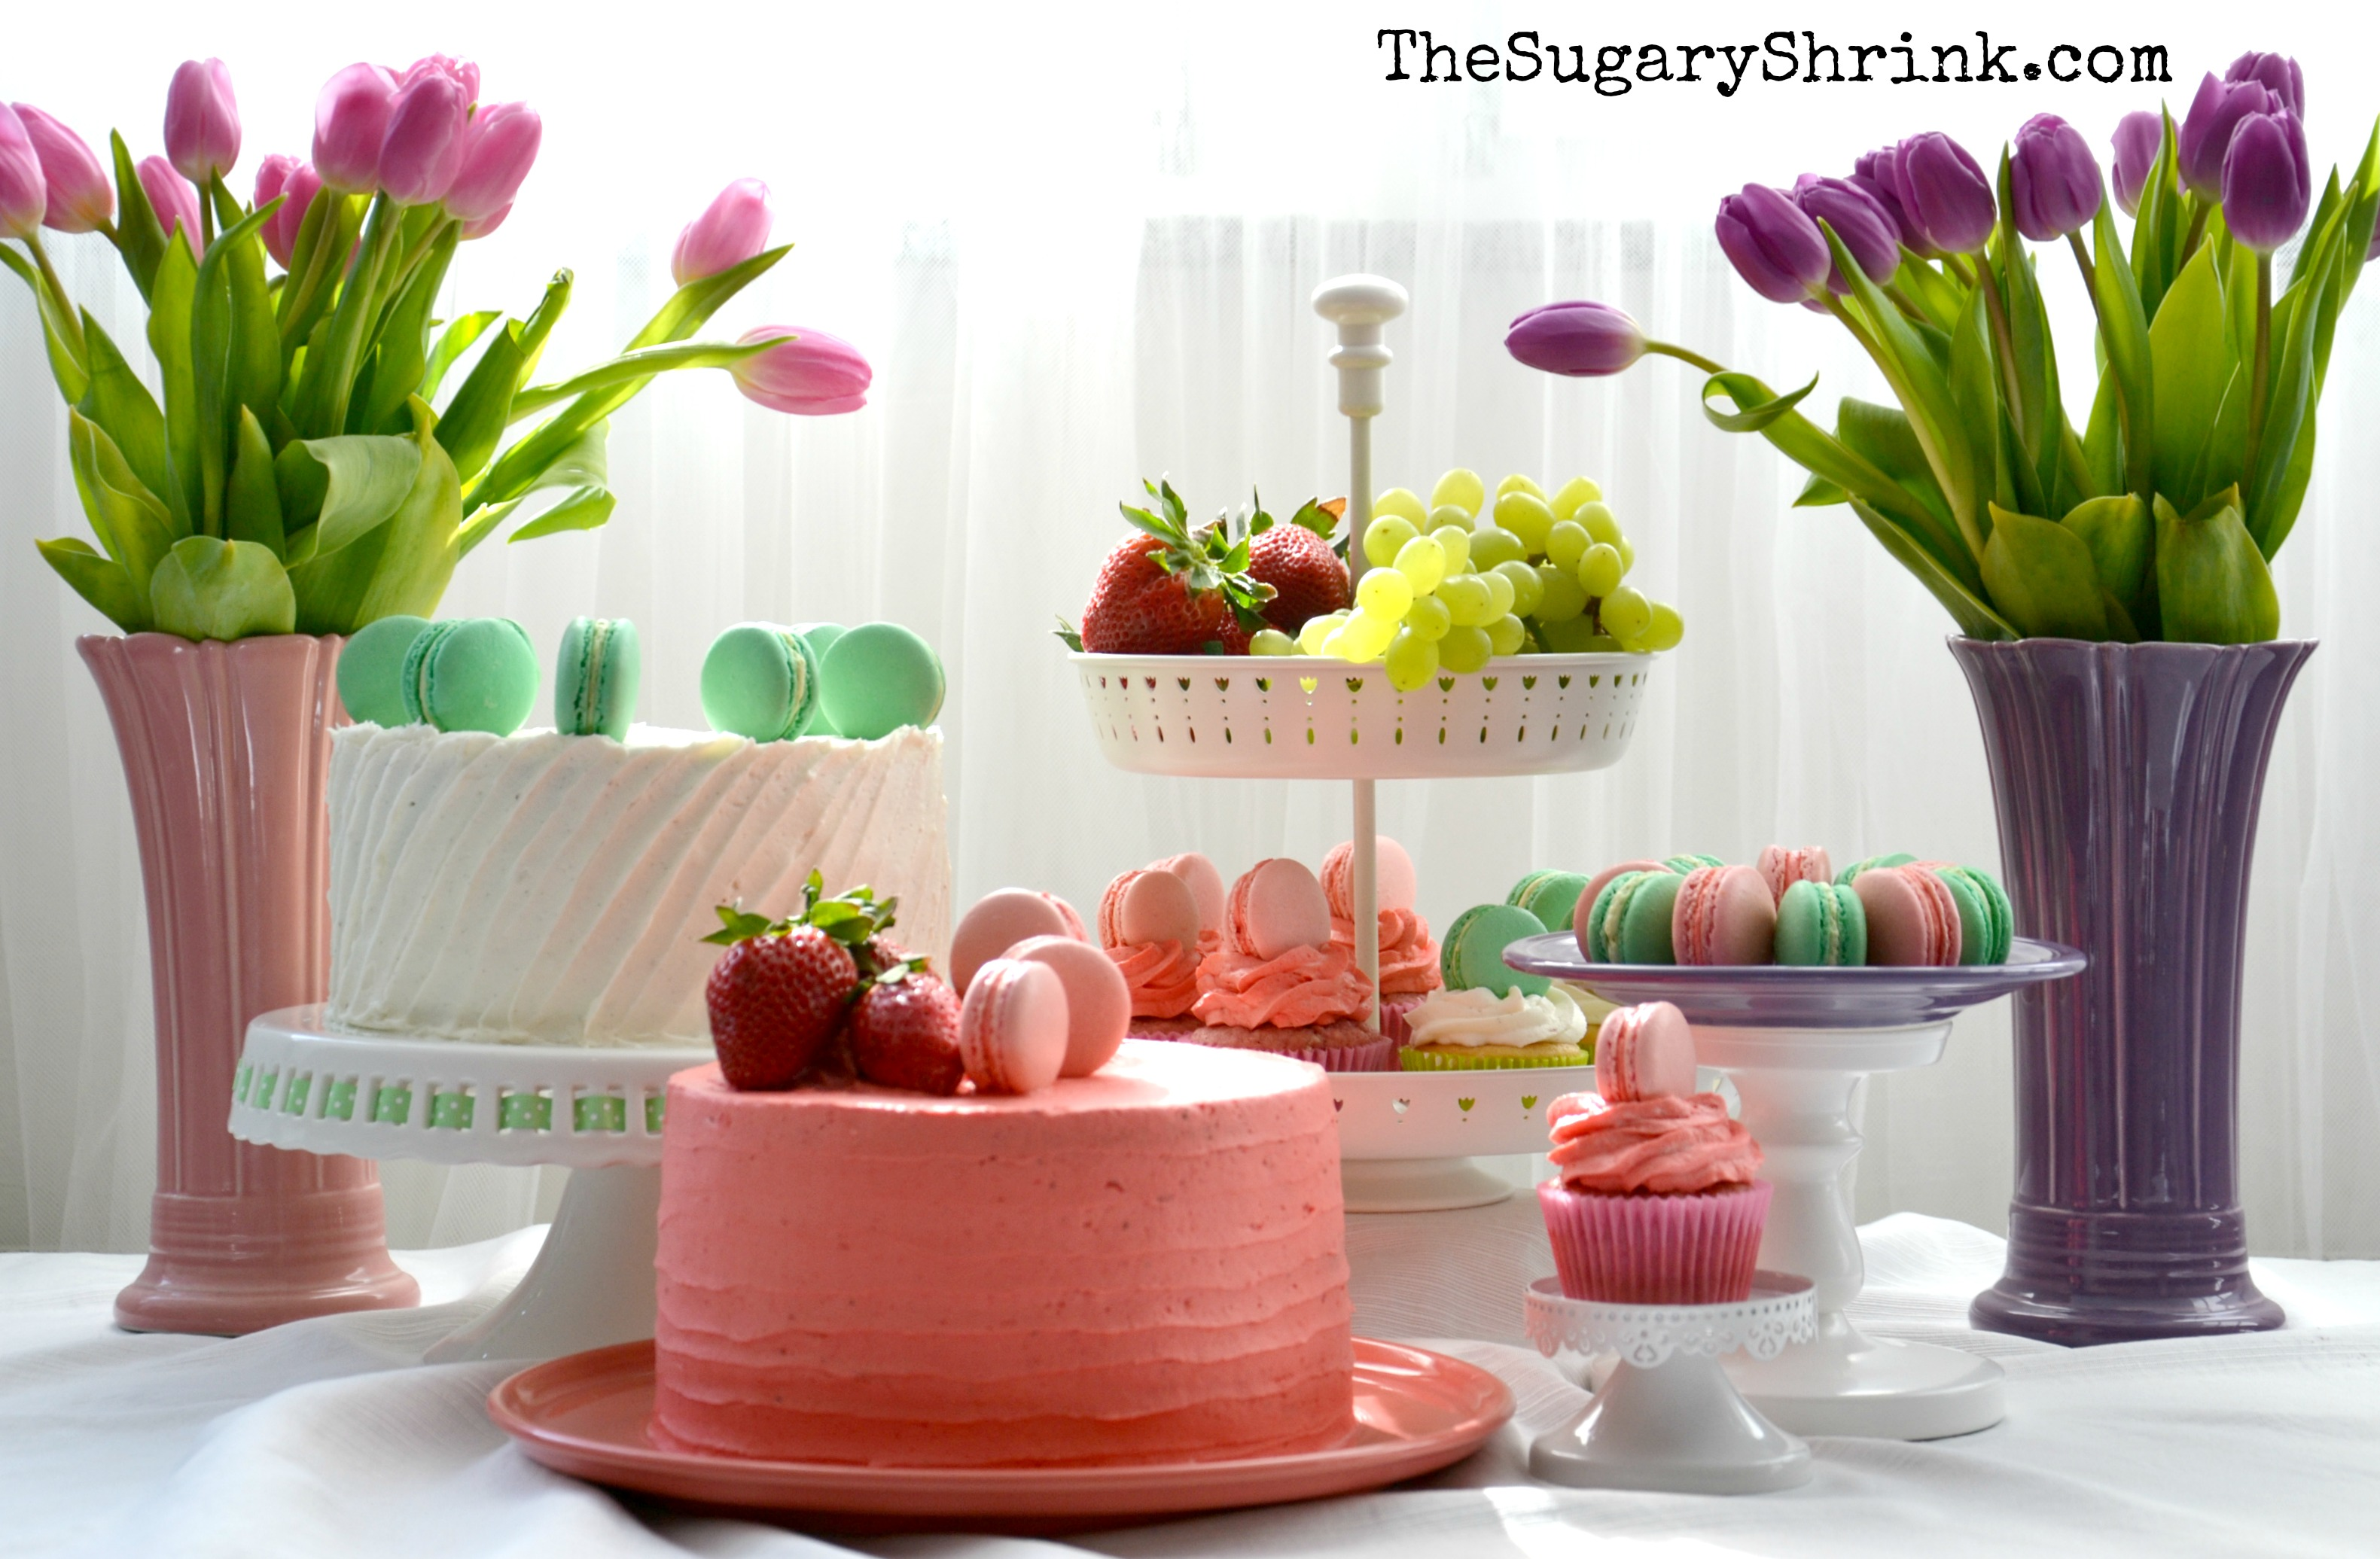 two cakes 198 tss